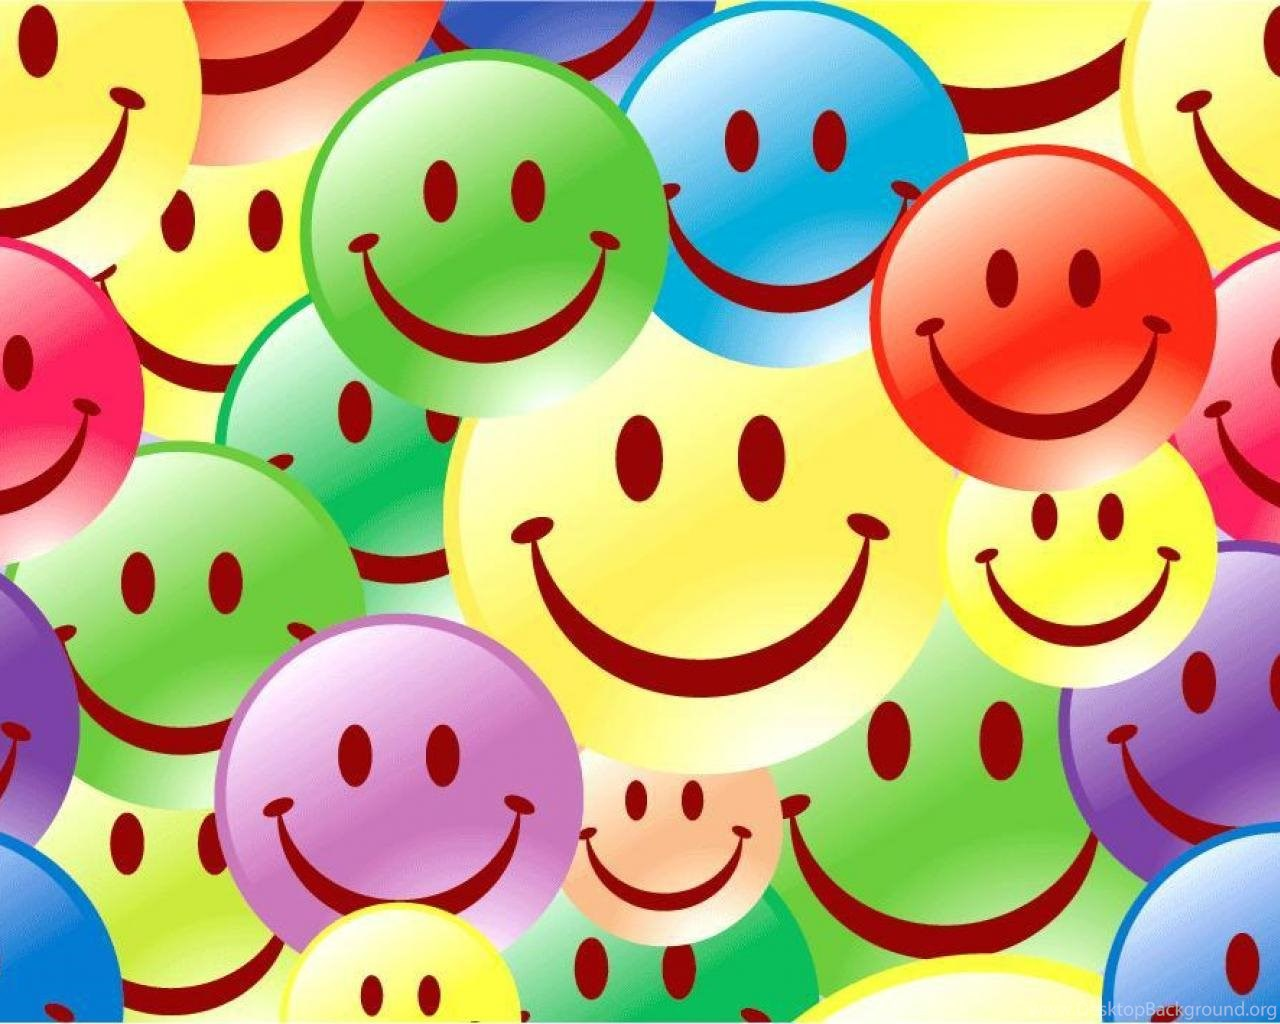 colourful smileys wallpaper desktop background